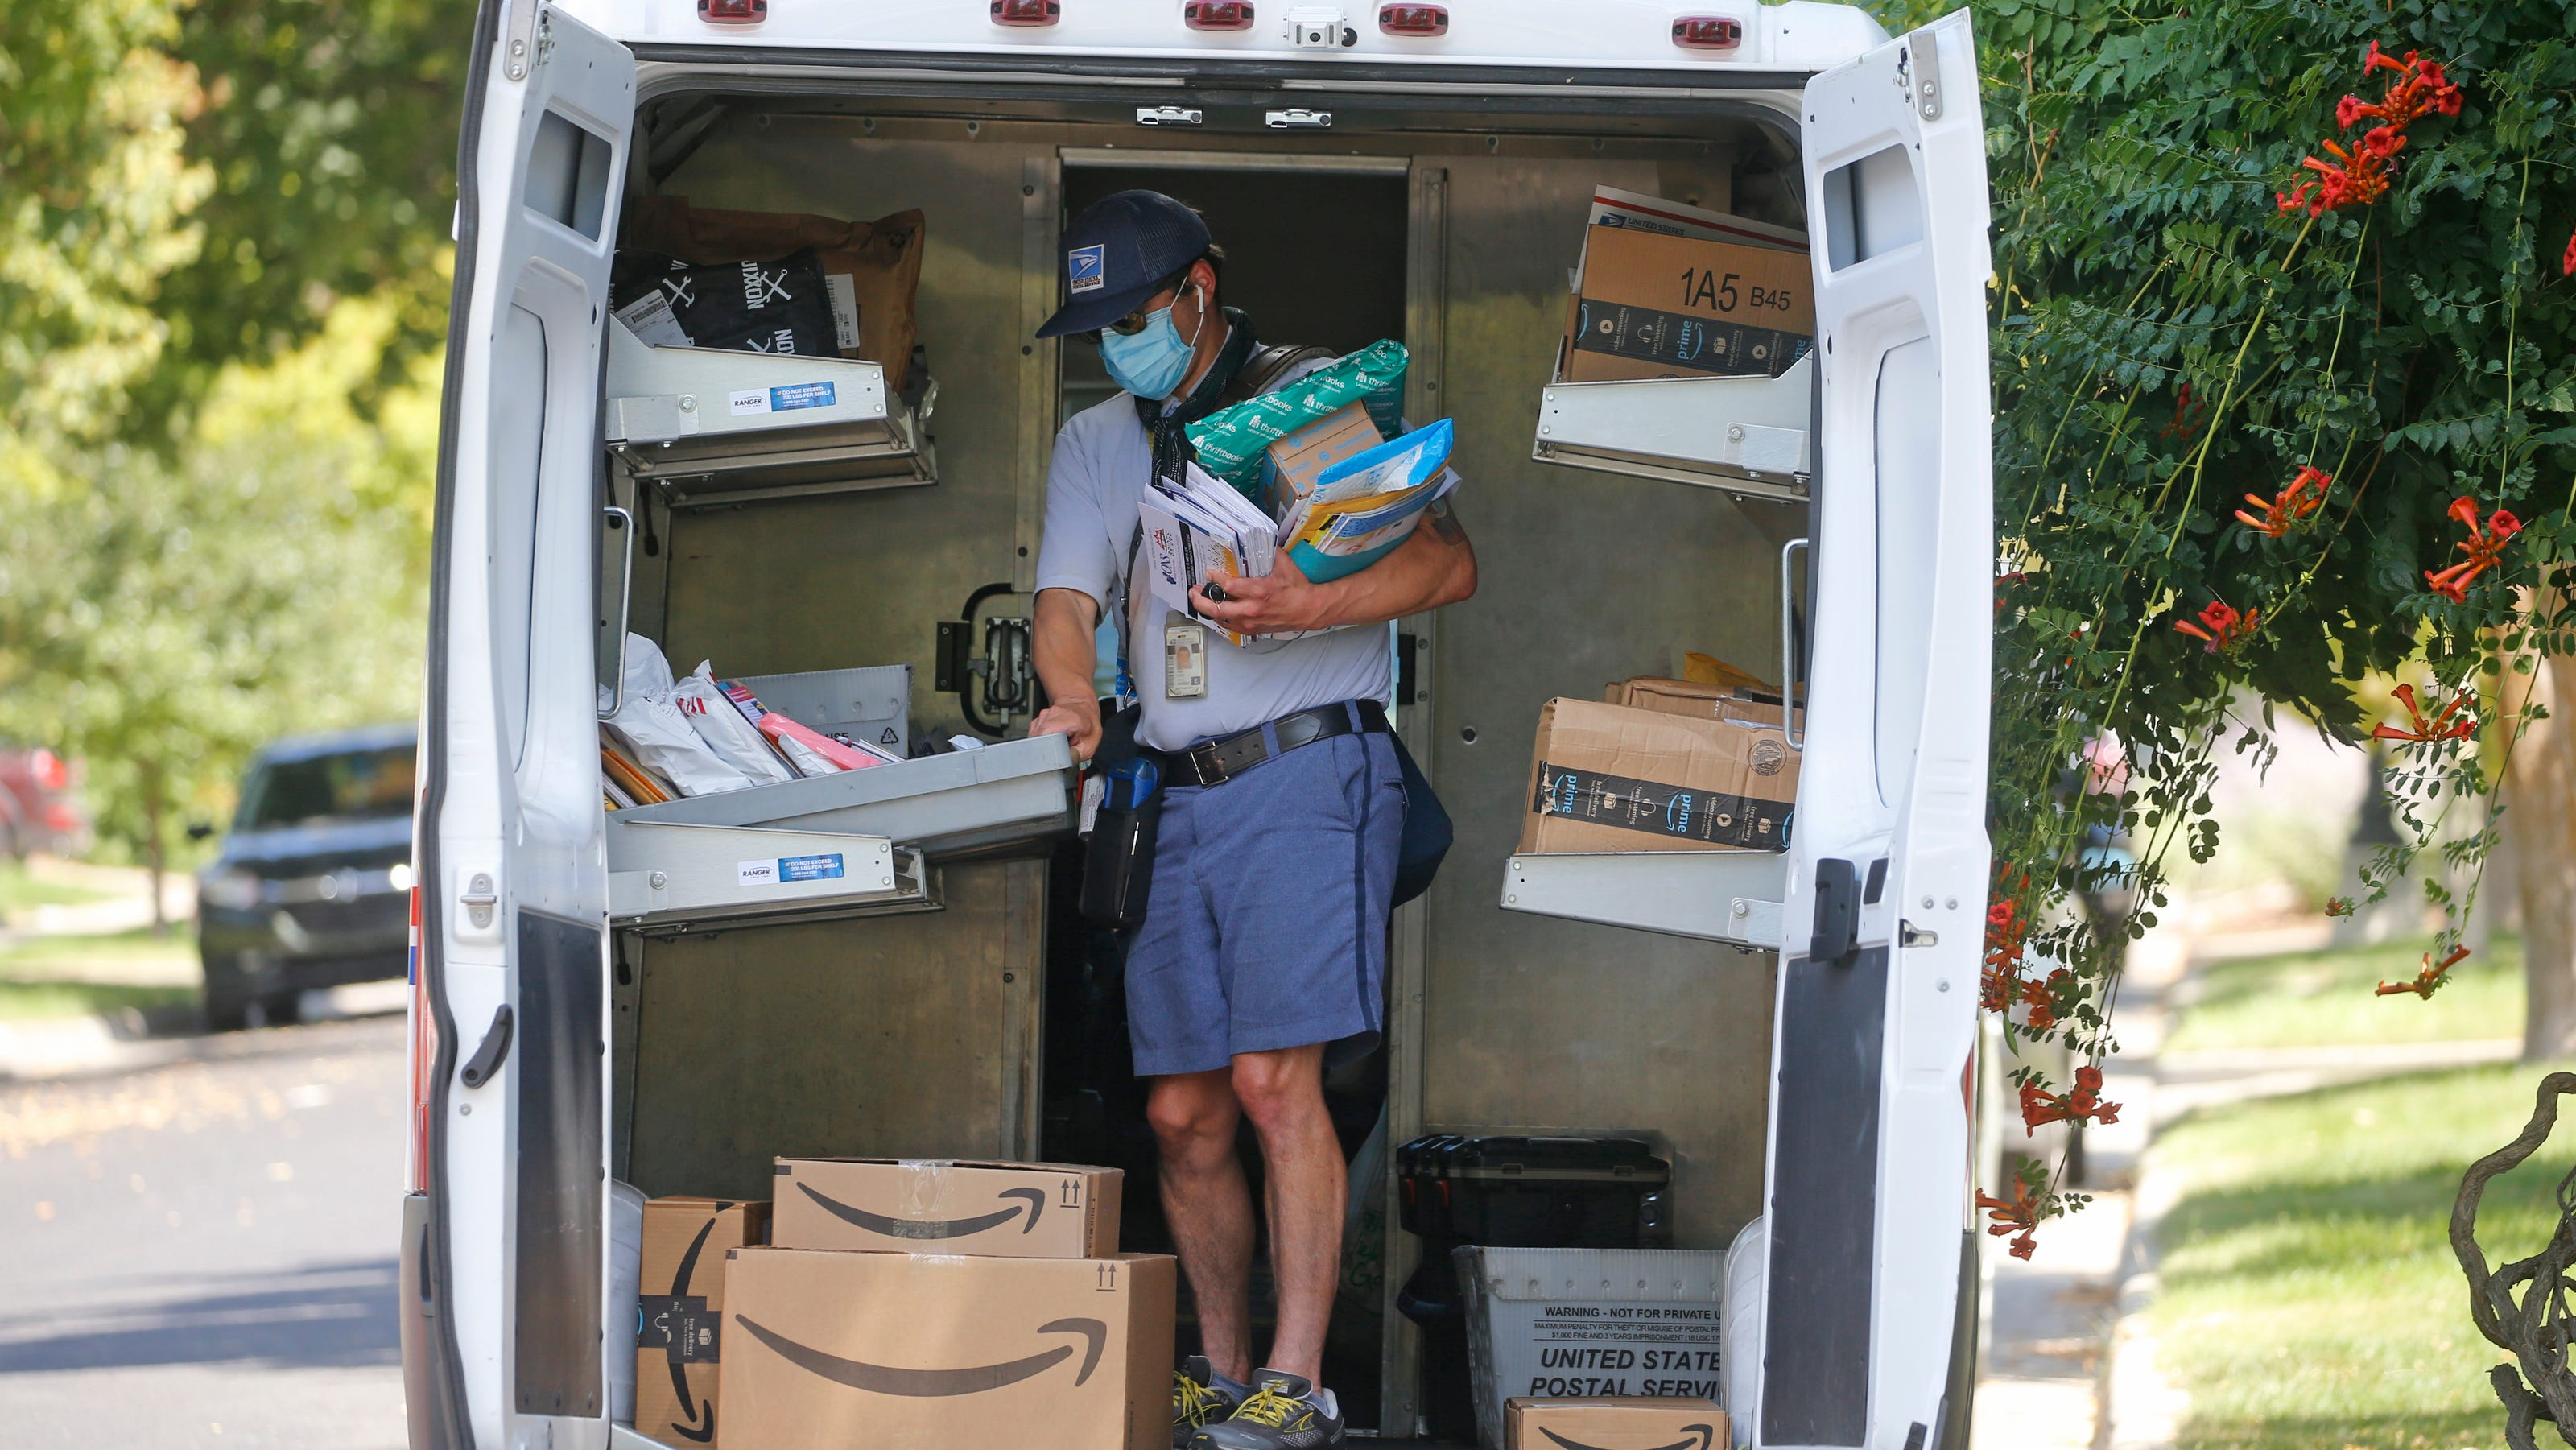 Over 5,800 letter carriers were attacked by dogs in 2020, US Postal Service says - USA TODAY